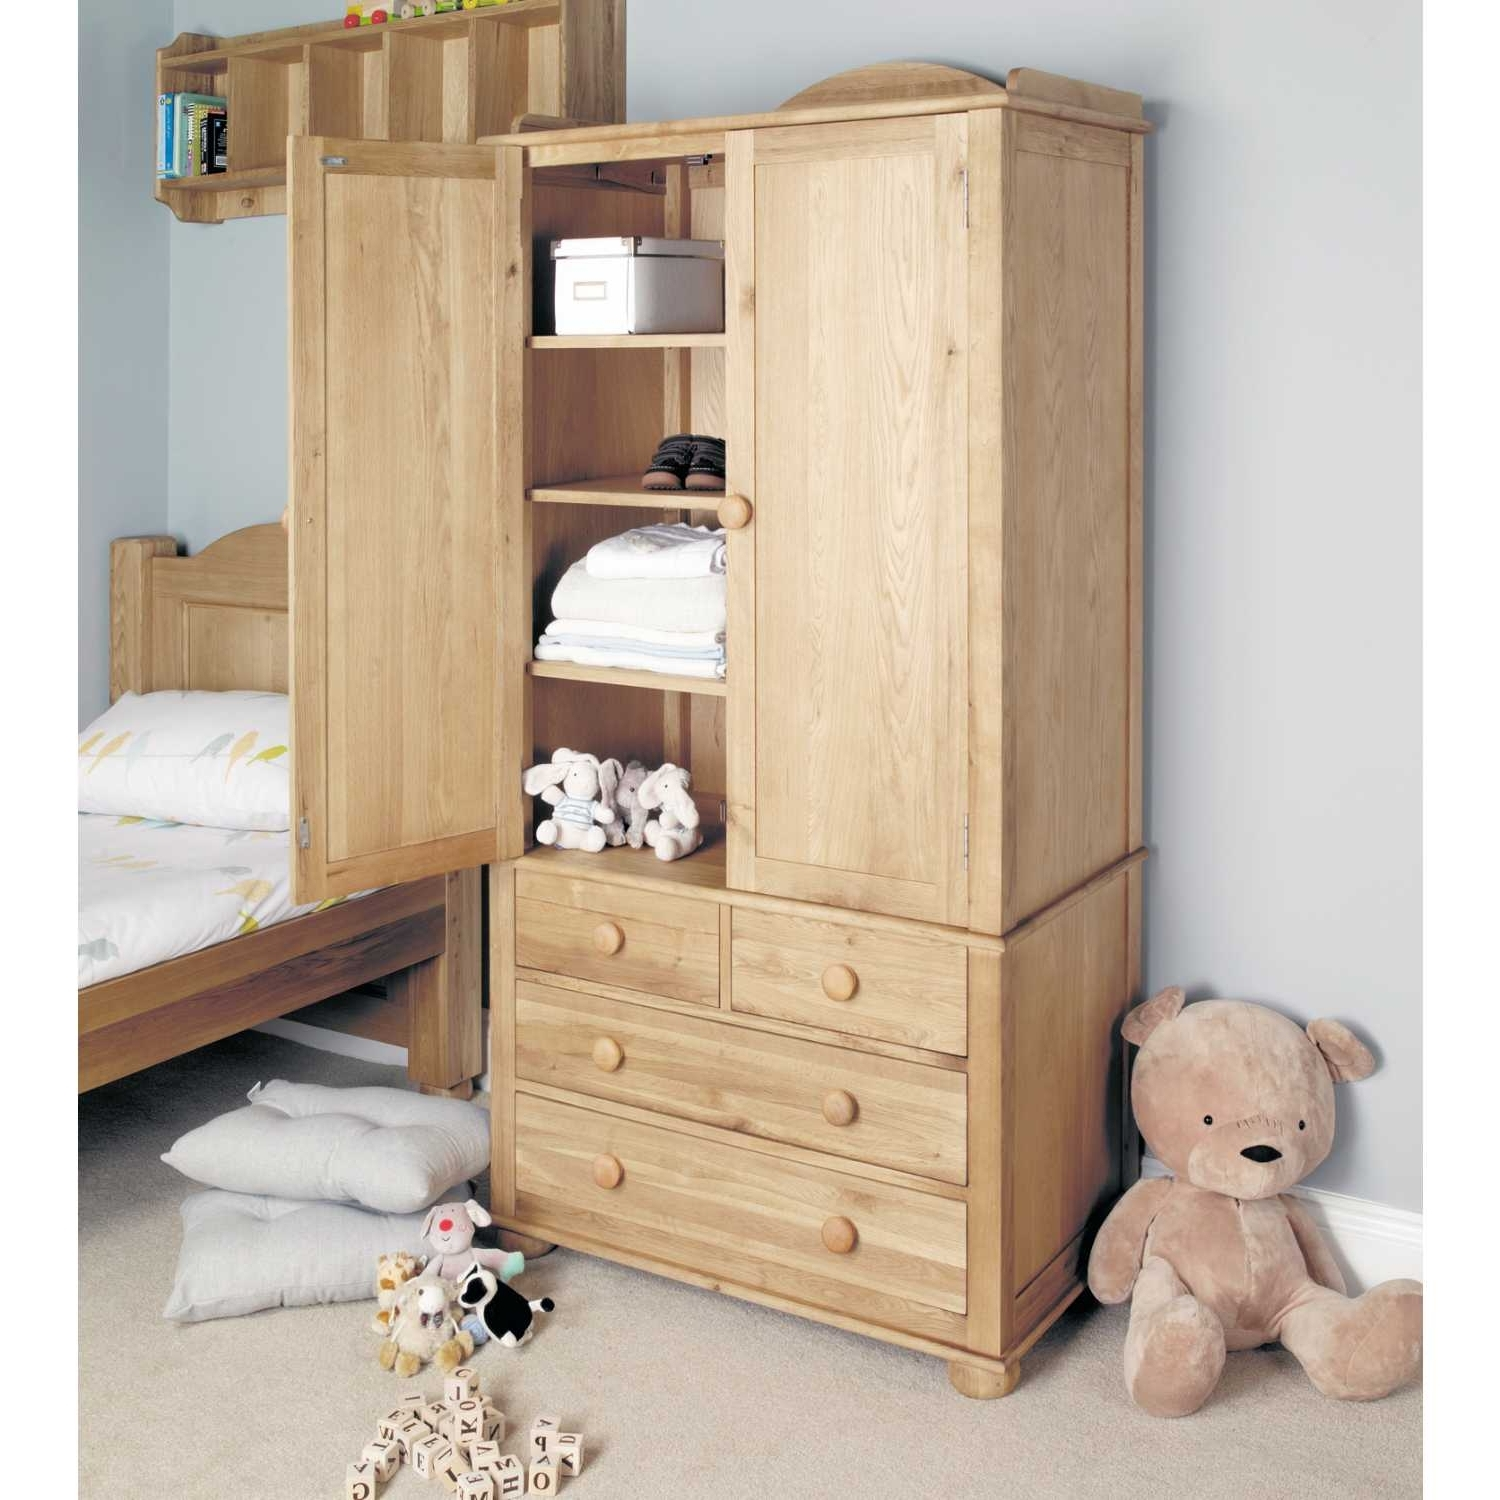 Wardrobe With Shelves And Drawers For 2018 Triple Wardrobe With Shelves And Drawers • Drawer Ideas (View 2 of 15)